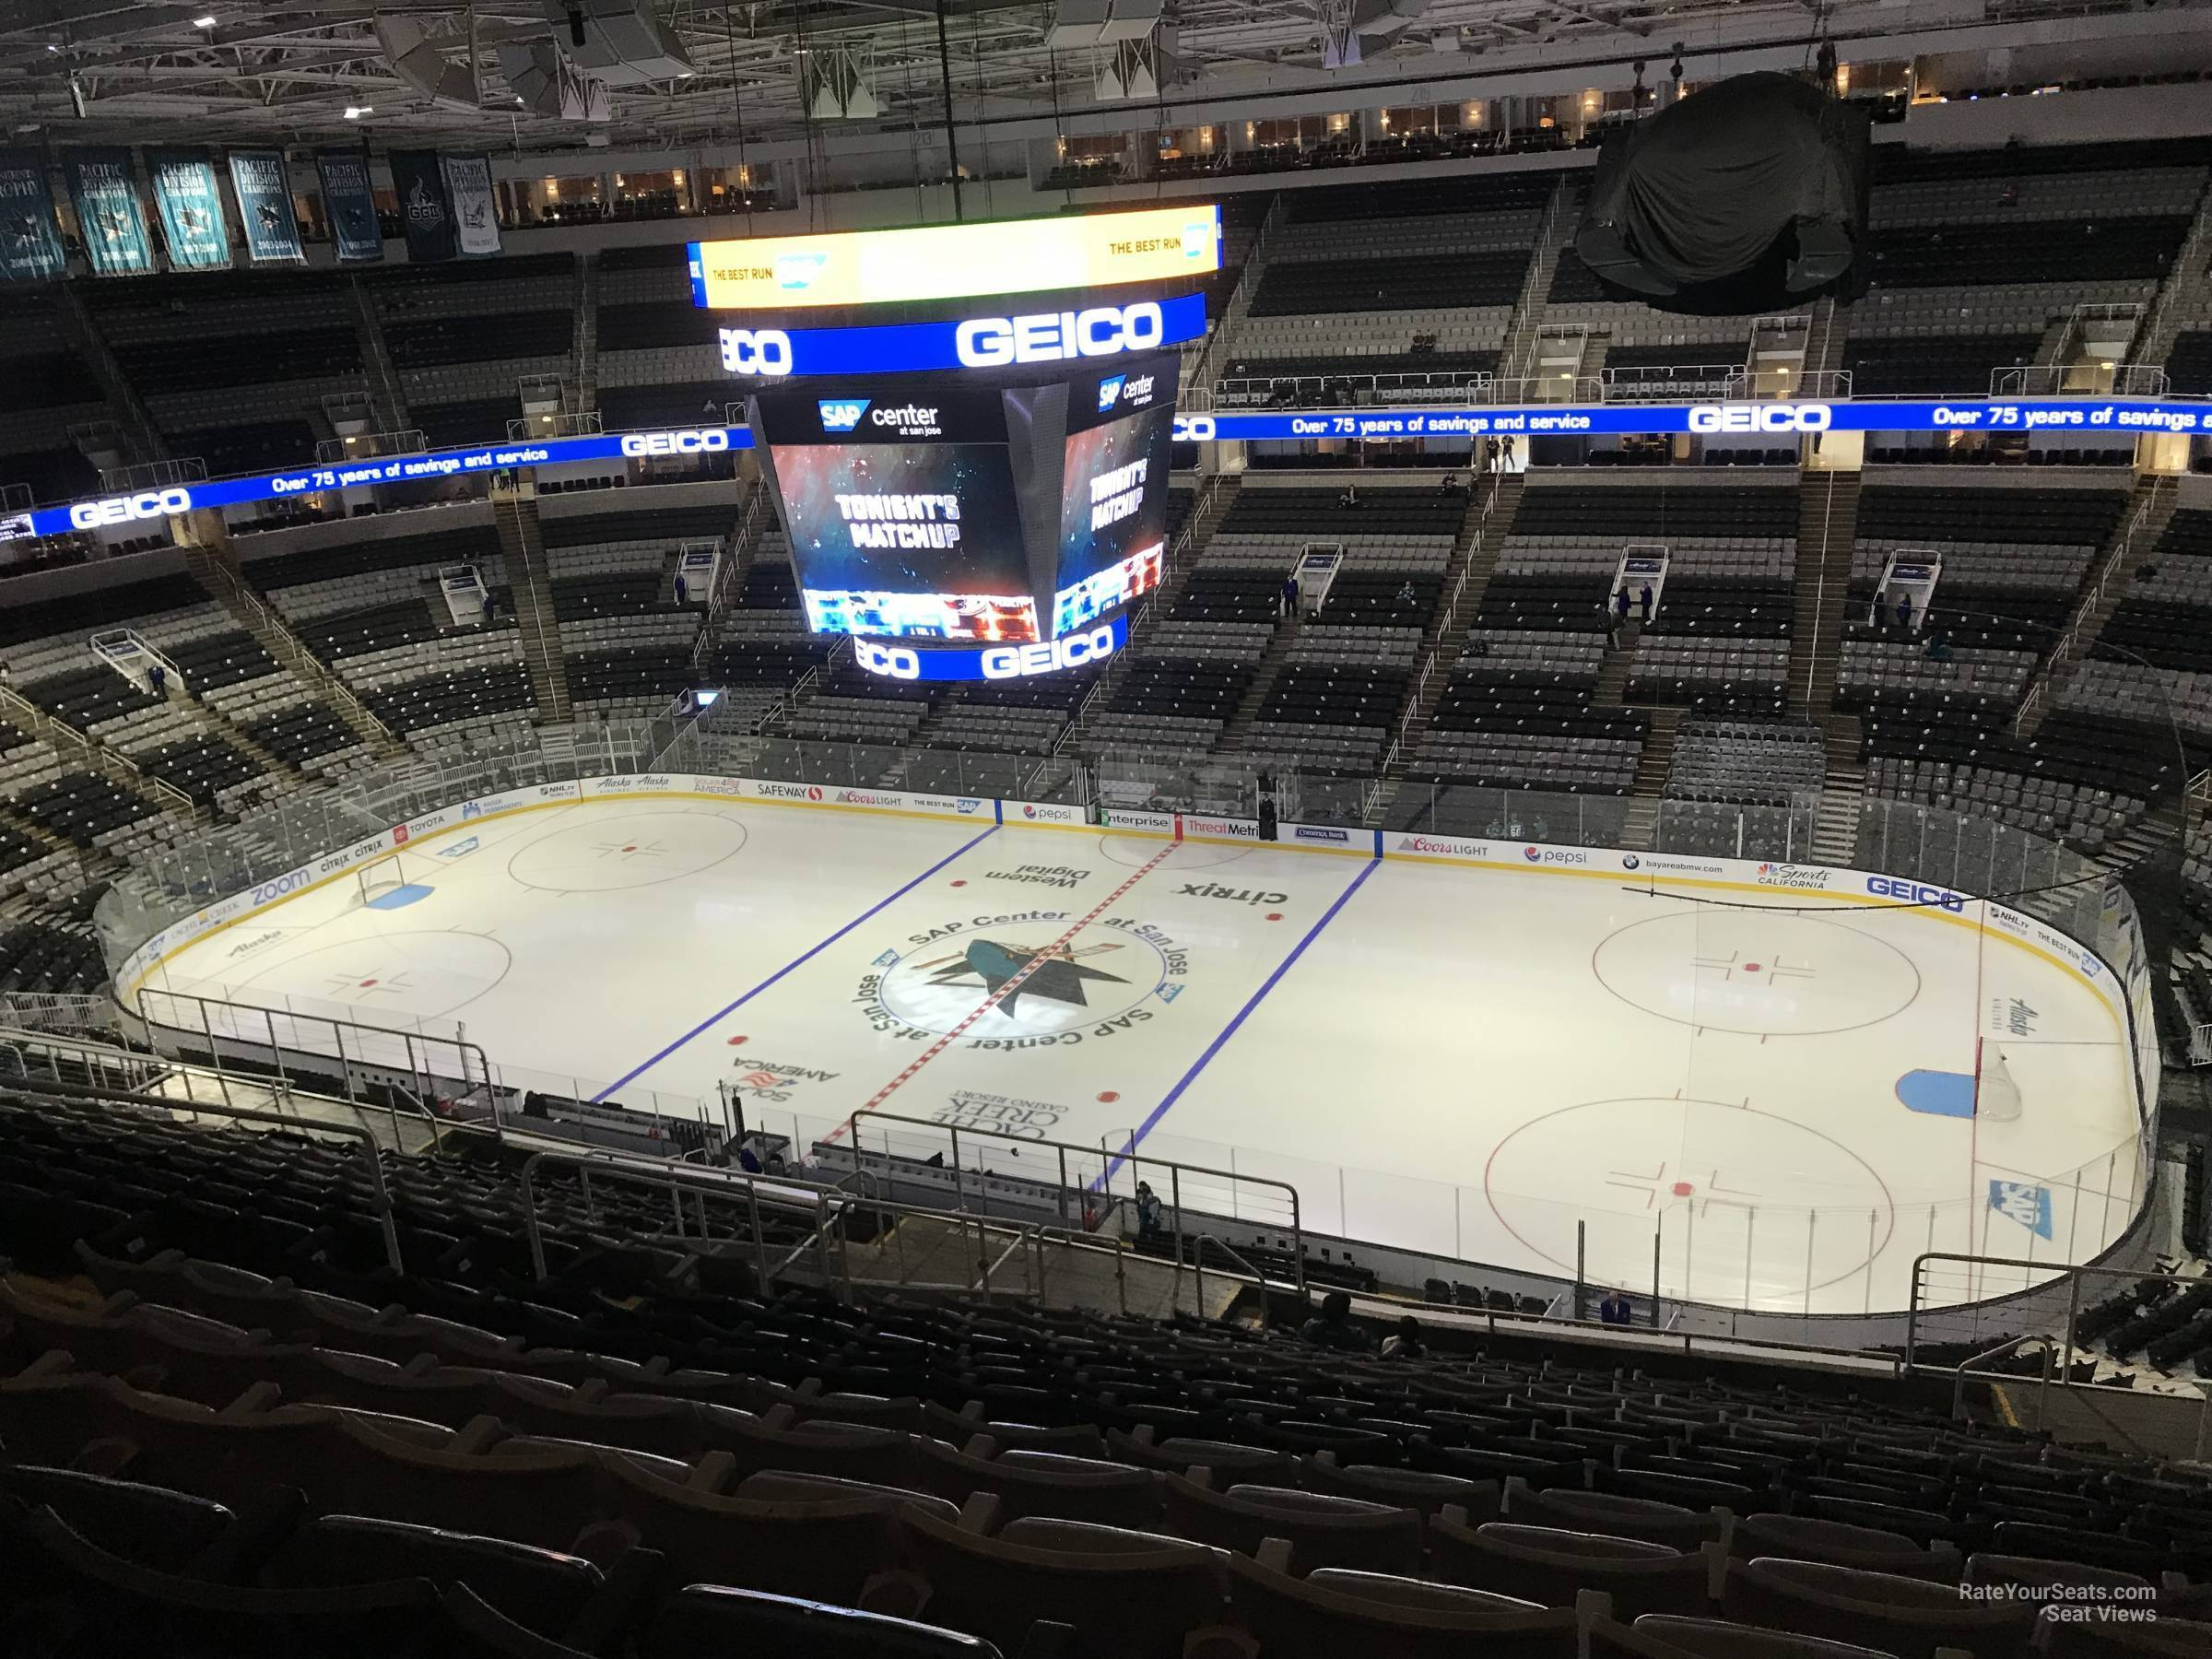 Section 227 seat view